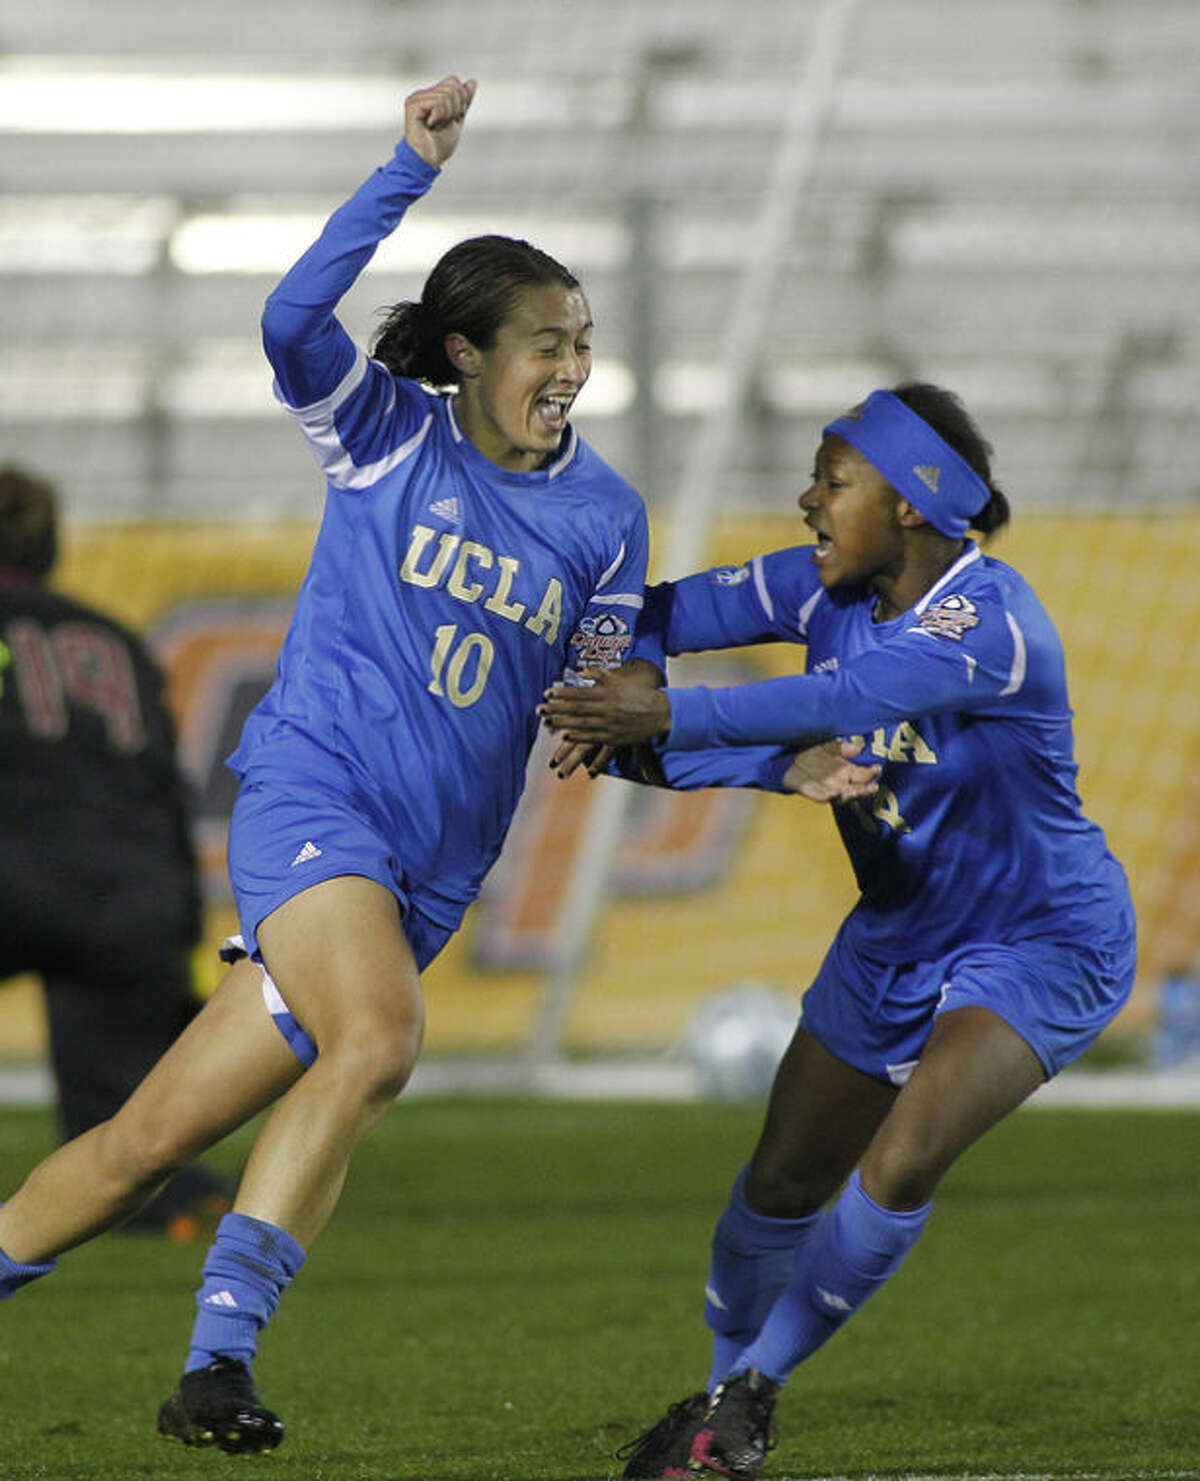 UCLA'S Kodi Lavrusky, left, celebrates with teammate Taylor Smith, right, after scoring the winning goal against Florida State in overtime of the championship soccer game at the NCAA Women's College Cup in Cary, N.C., Sunday, Dec. 8, 2013. (AP Photo/Ellen Ozier)